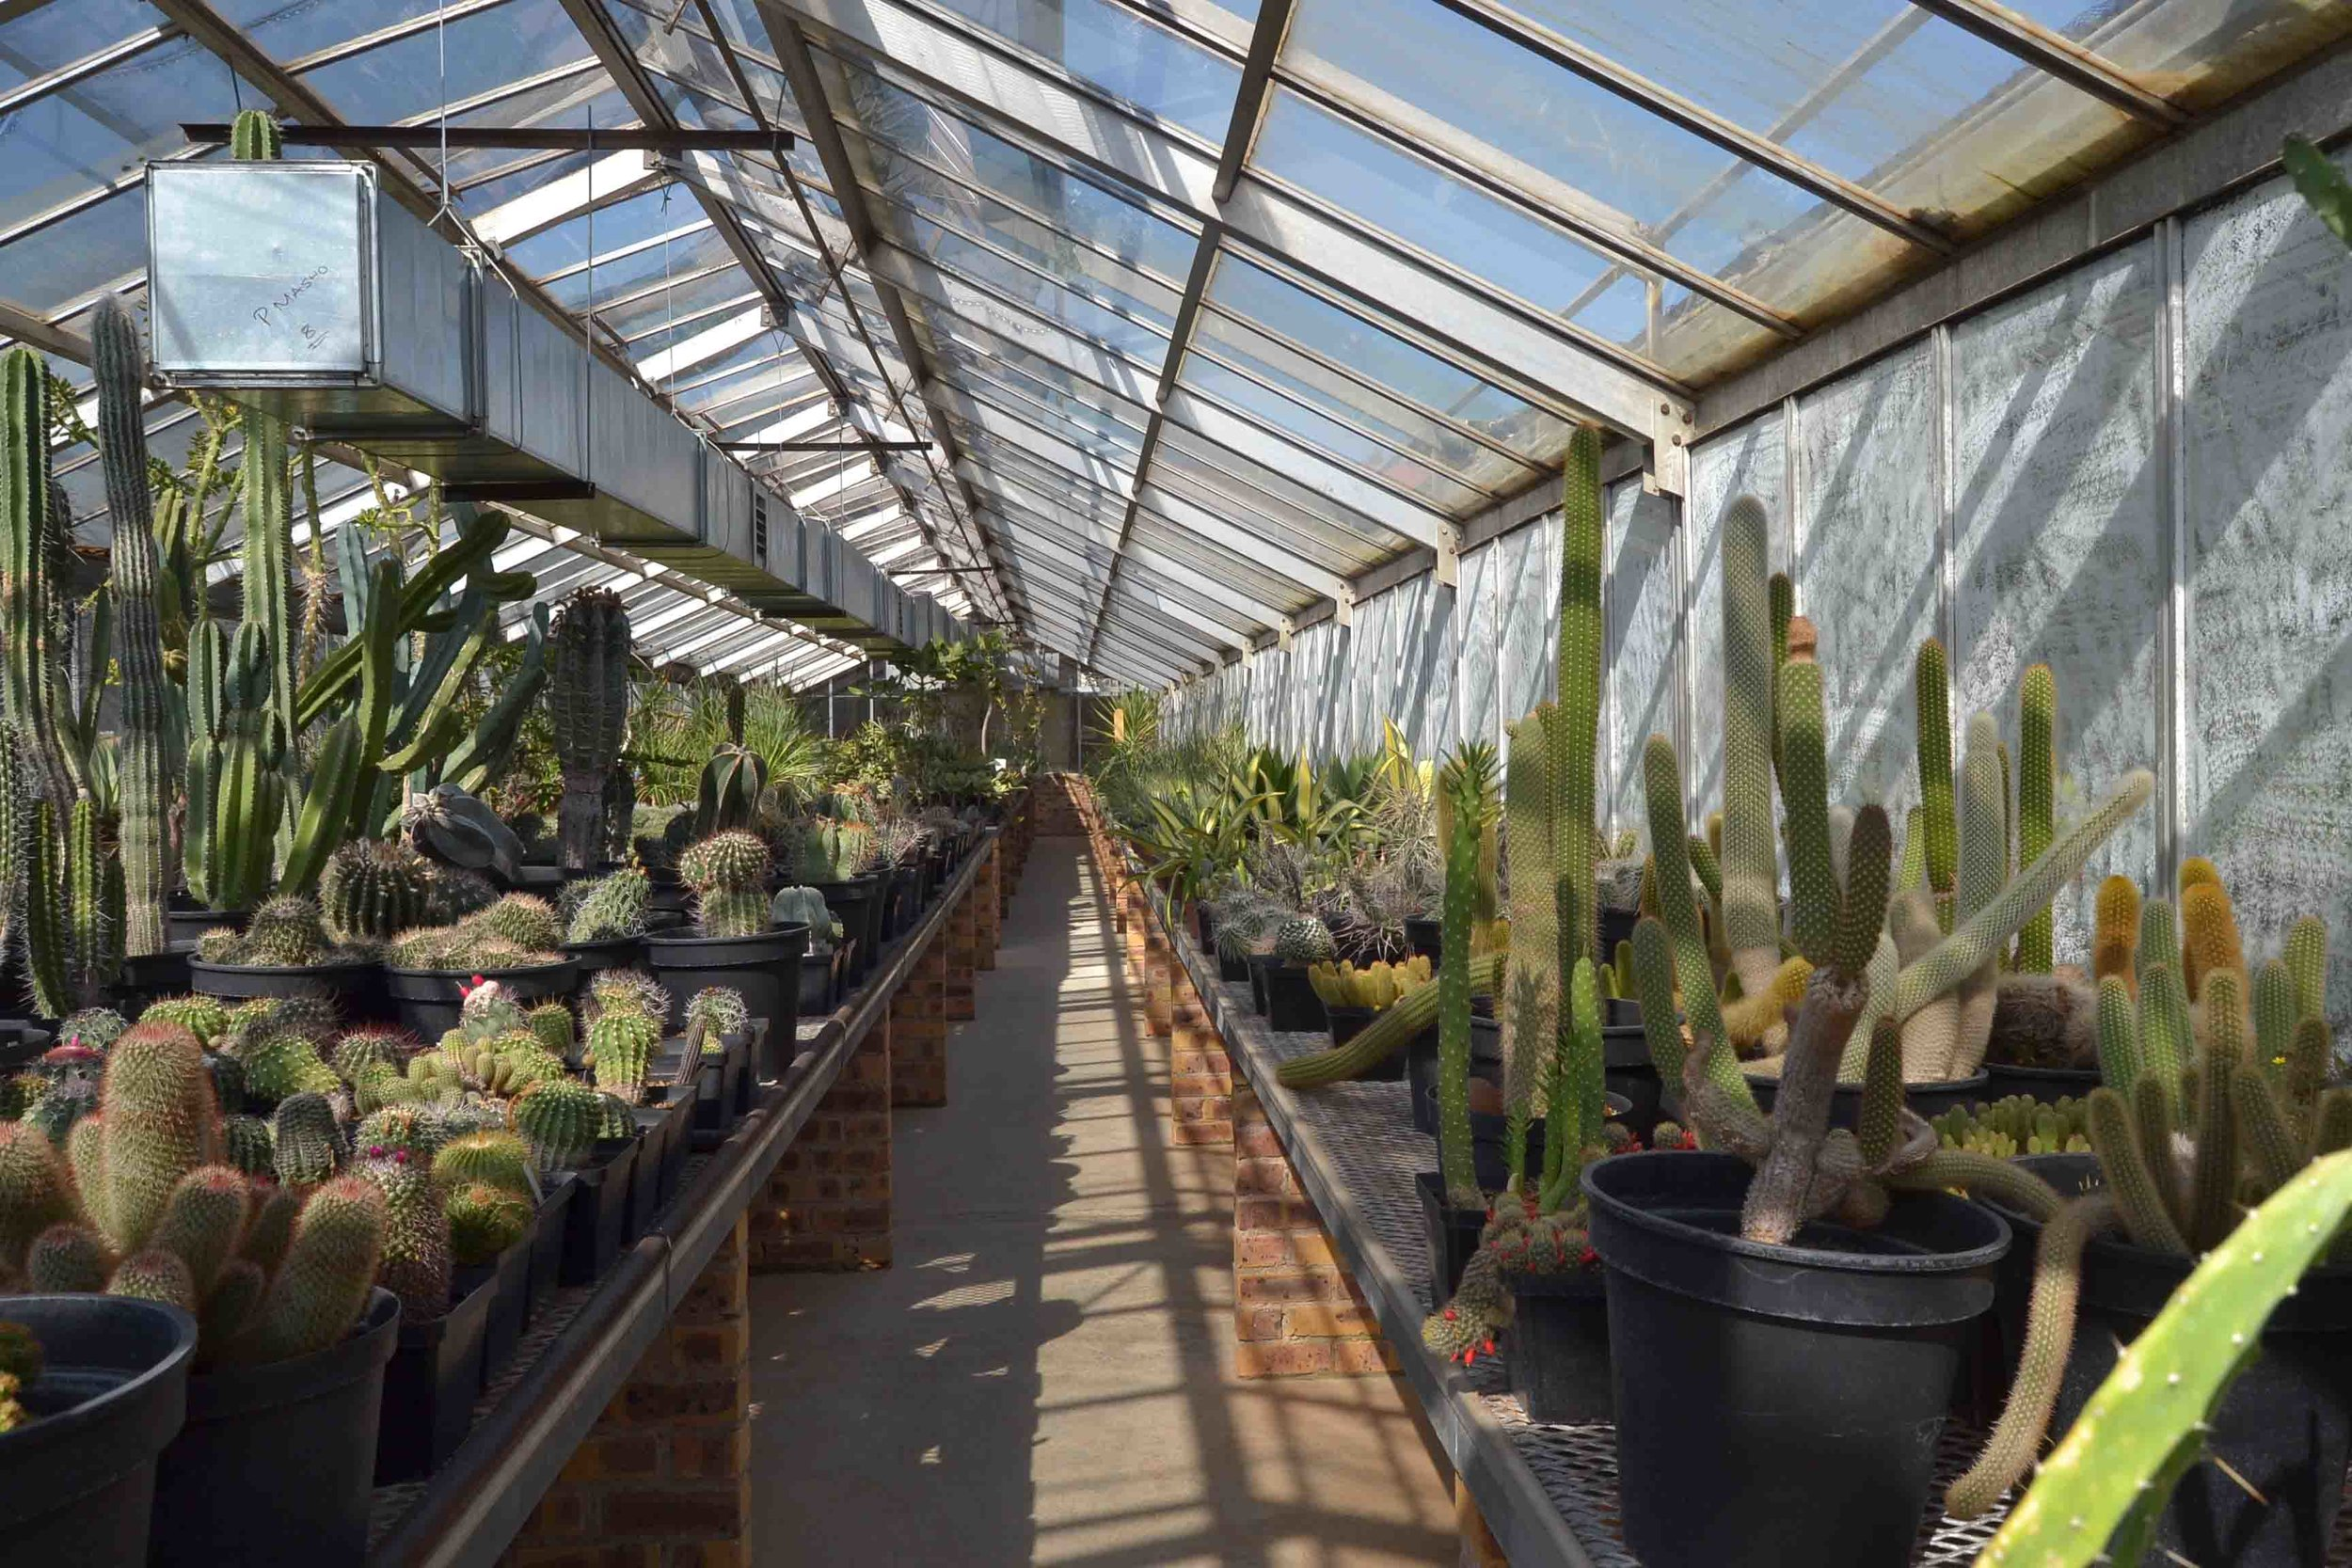 Succulents housed in Greenhouses - viewing by prior arrangement with JHB City Parks